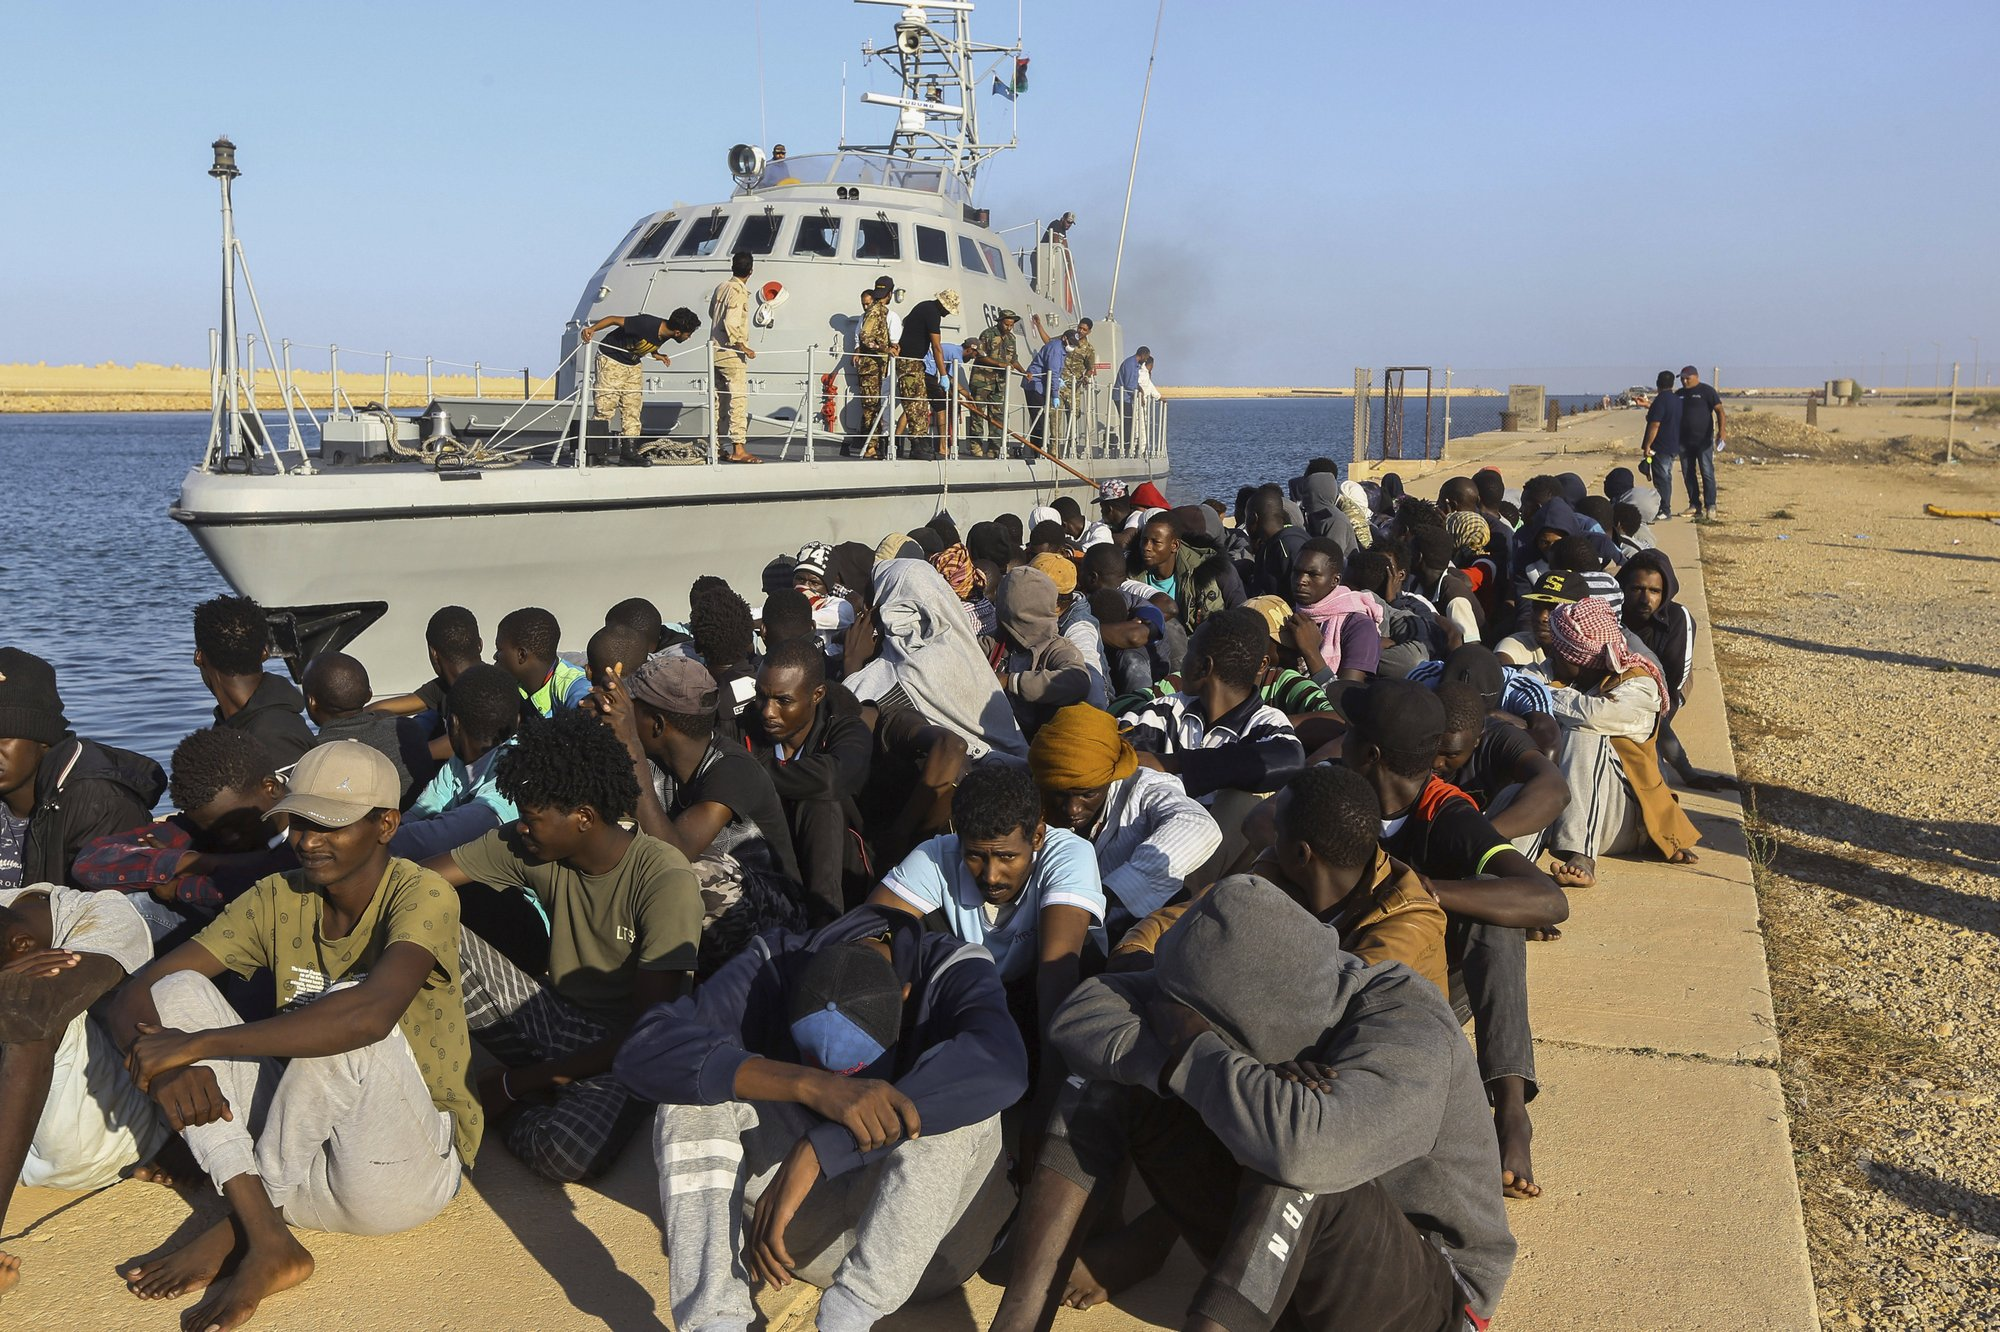 FILE - In this Tuesday, Oct. 1, 2019 file photo, rescued migrants are seated next to a coast guard boat in the city of Khoms, Libya, around 120 kilometers (75 miles) east of Tripoli. When millions of euros started flowing from the European Union into Libya to slow the tide of migrants crossing the Mediterranean, the money came with EU promises to improve detention centers notorious for abuse and to stop human trafficking. That hasn't happened. (AP Photo/Hazem Ahmed,File)